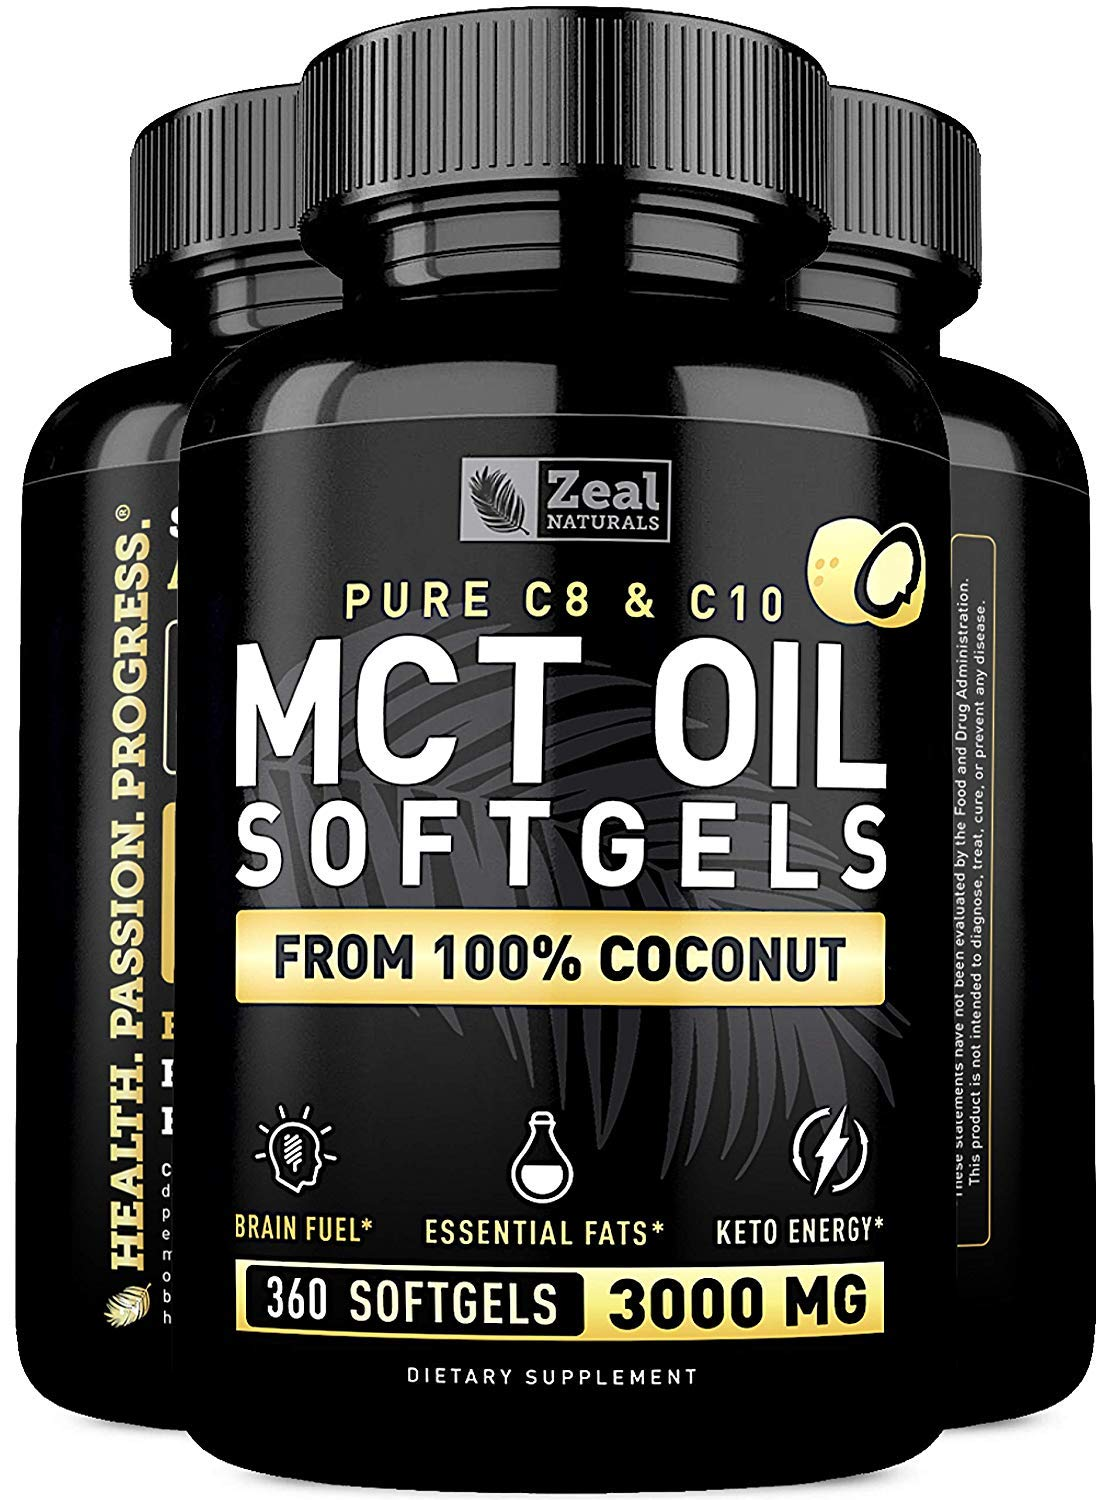 Pure MCT Oil Capsules (360 Softgels   3000mg) 4 Month Supply MCT Oil Keto Pills w Unrefined Coconut Oil - C10 & C8 MCT Oil Coconut Oil Capsules - Keto Brain Fuel, Keto Energy, Octane Oil Ketosis Pills